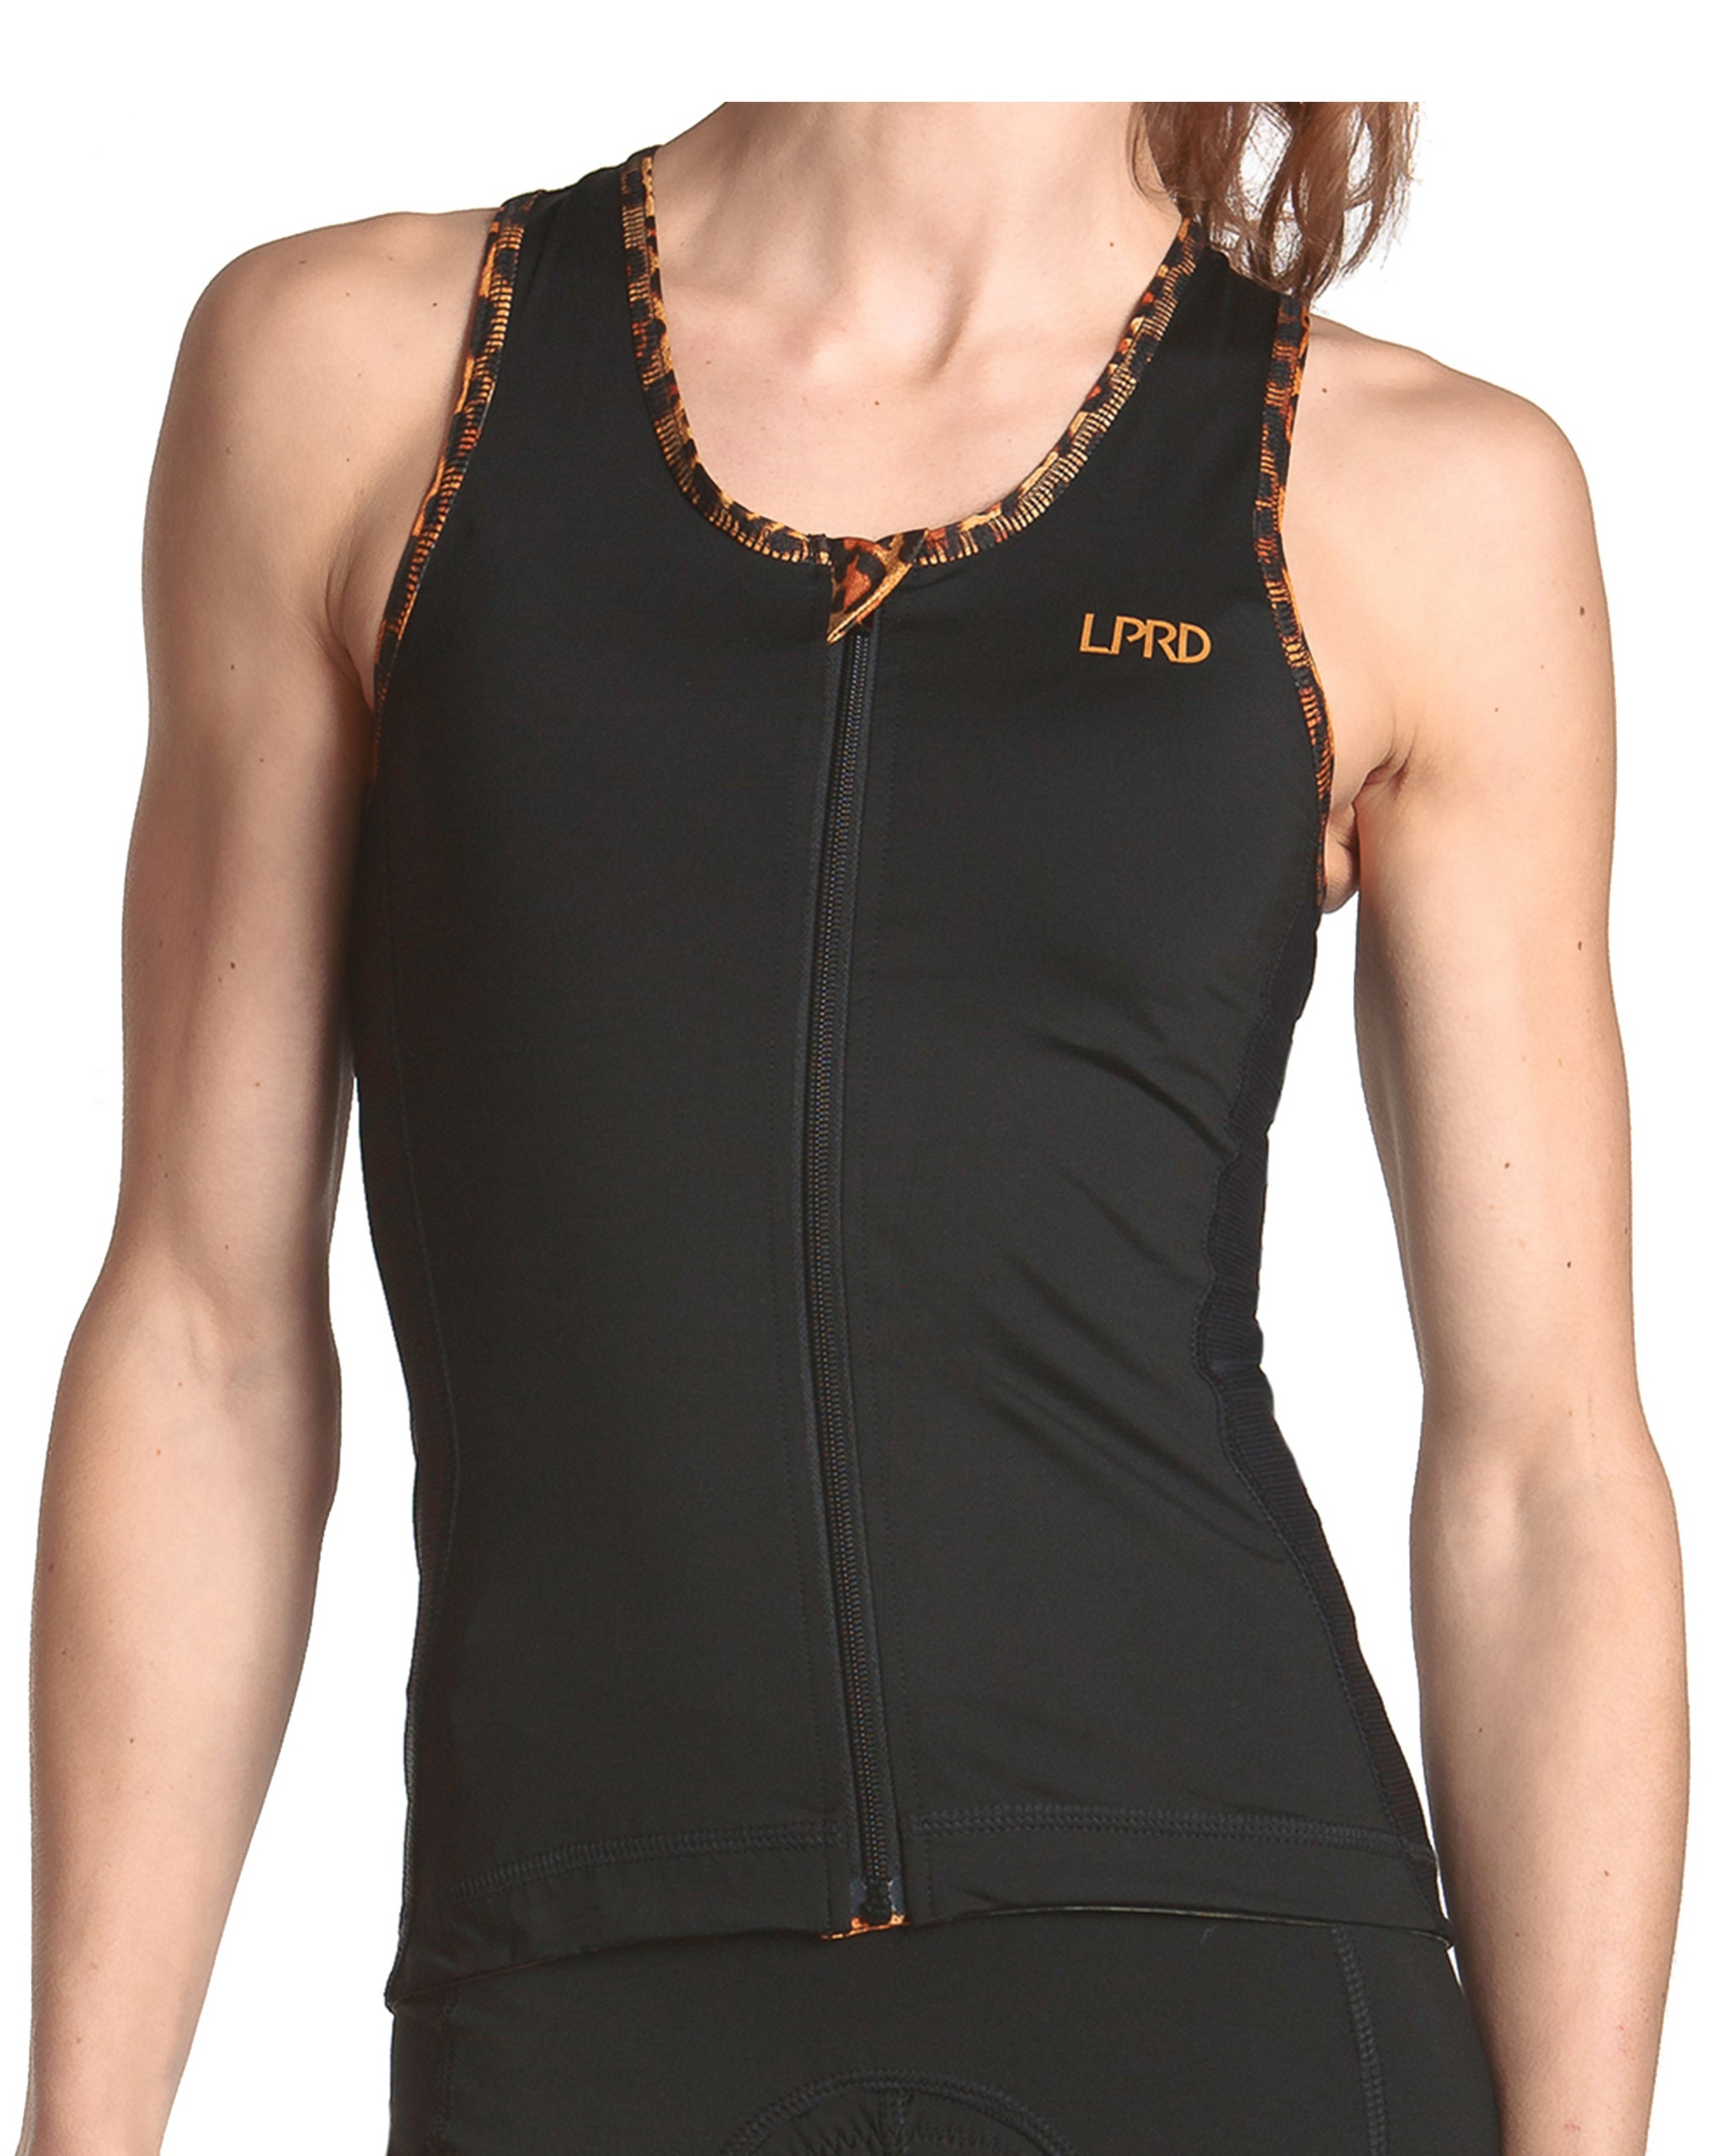 LPRD Black Tank Top | Front View Close